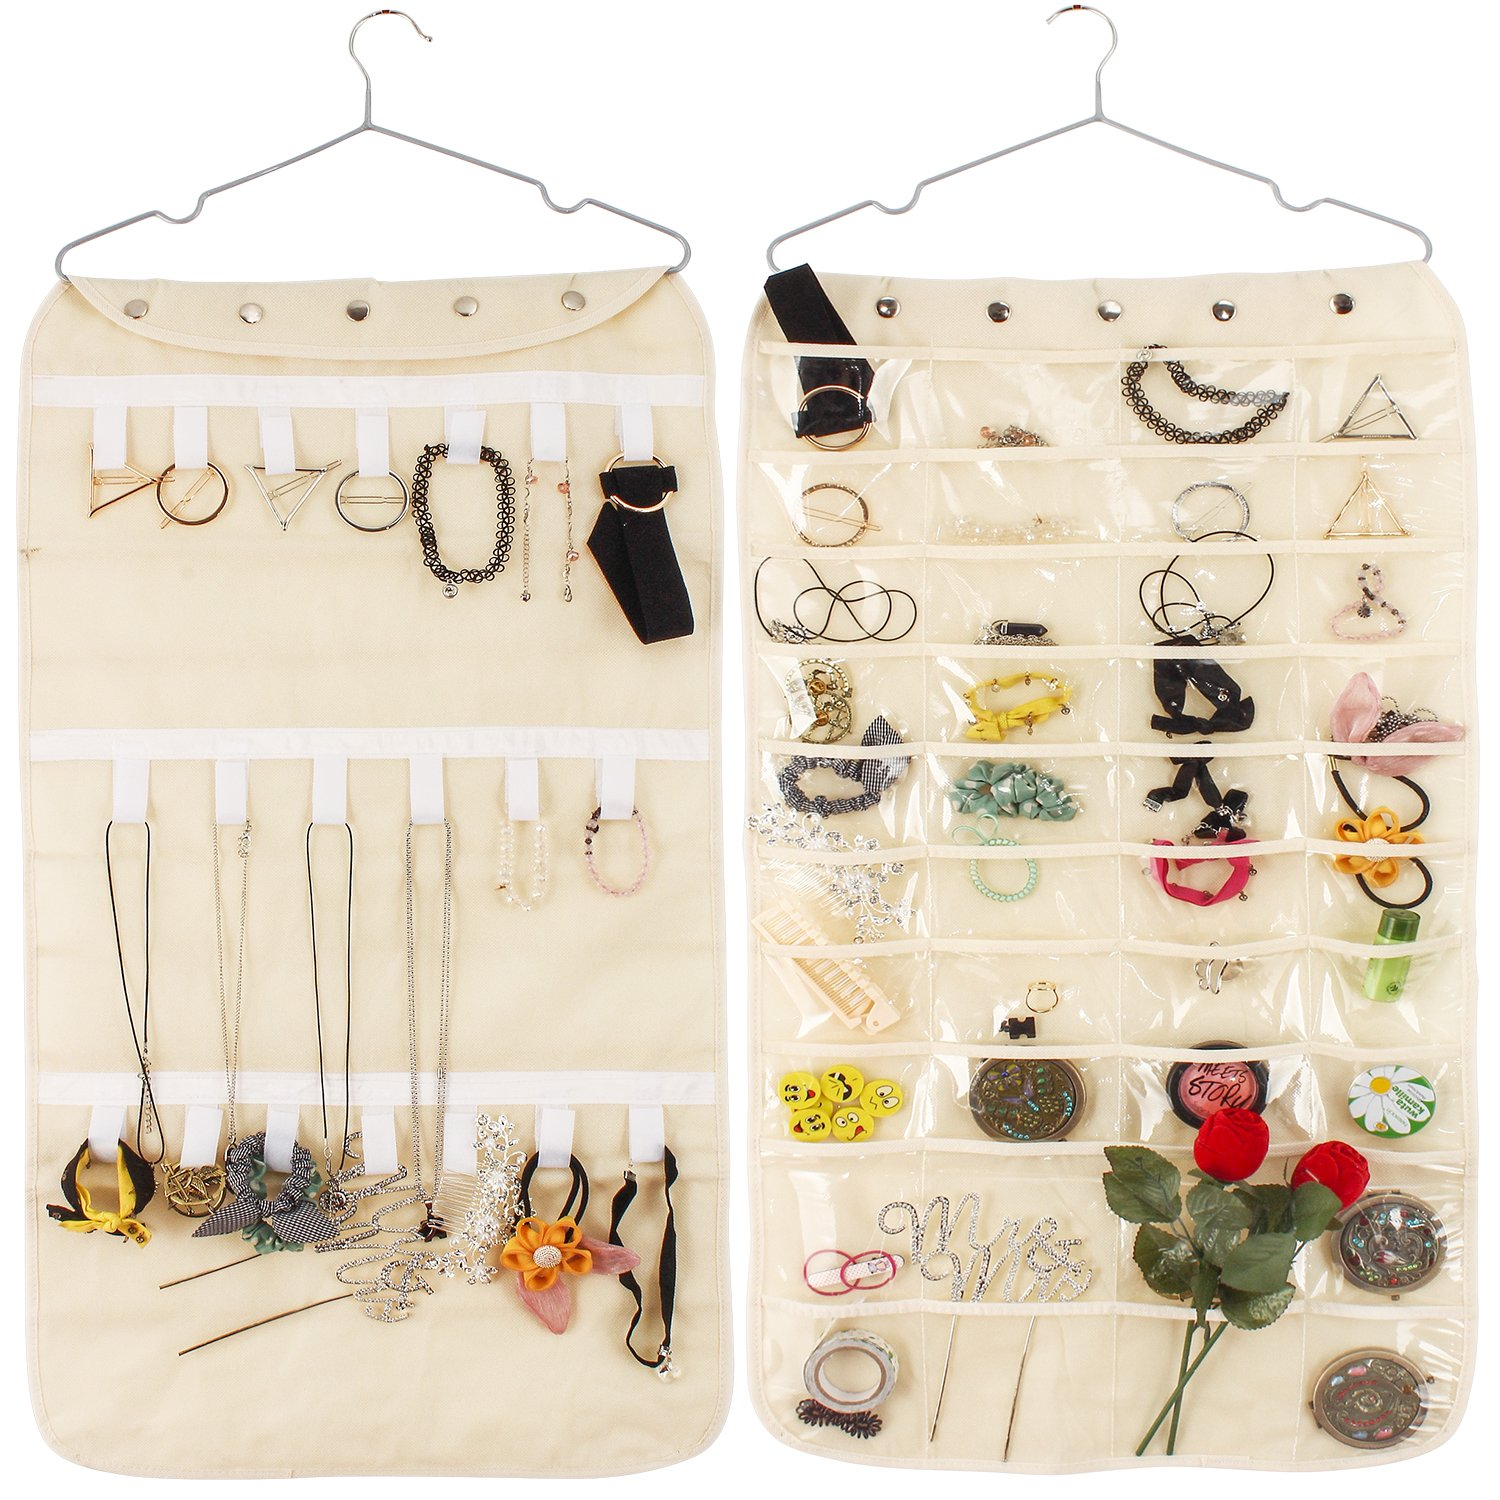 40 Pockets & 20 Hook-and-Loop Tabs Hanging Jewelry Organizer Dual Sided Household Accessory Holder Storage Bag Closet Storage for Earrings Necklace Bracelet Ring with Hanger(Beige) by Colleer